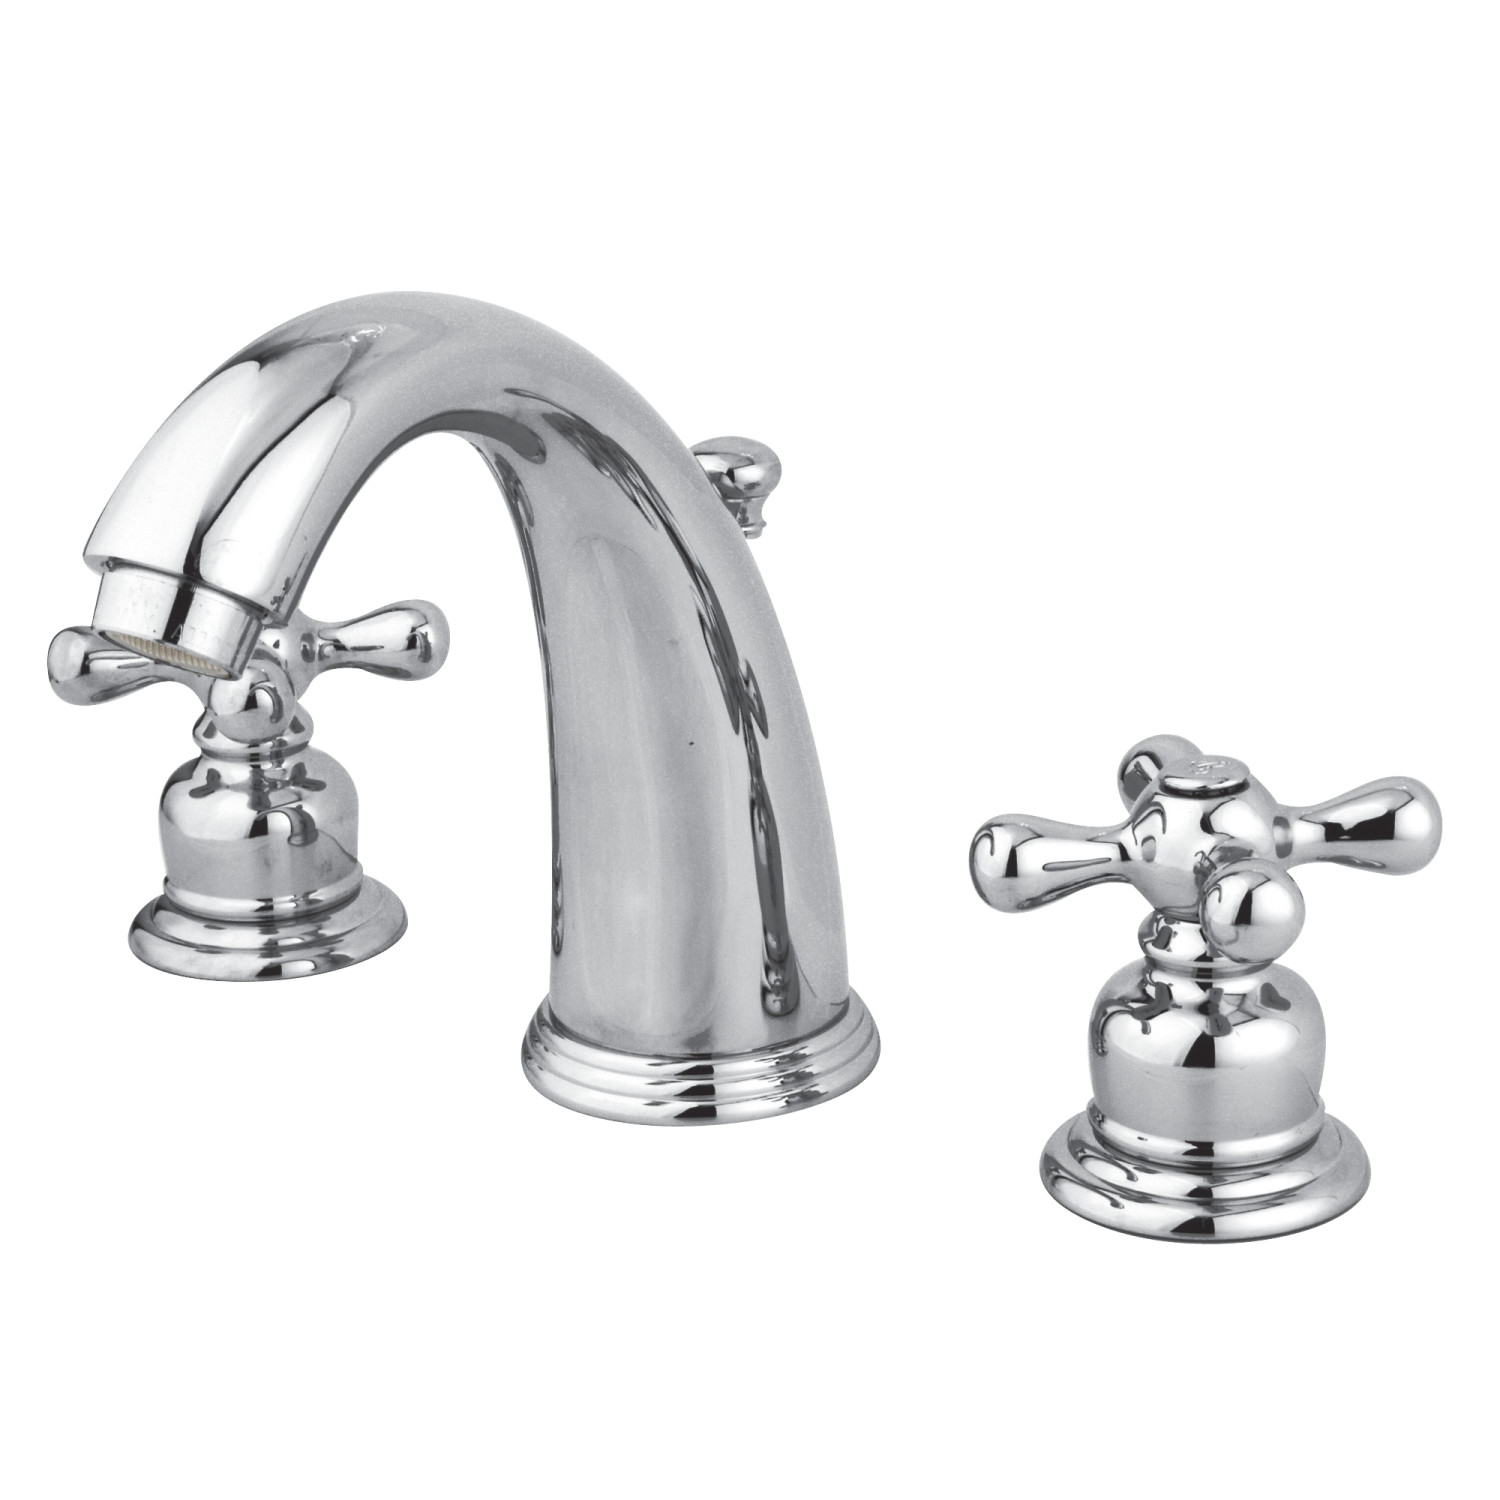 Vintage 2-Handle Three-Hole Deck Mounted Widespread Bathroom Faucet with Plastic Pop-Up in Polished Chrome